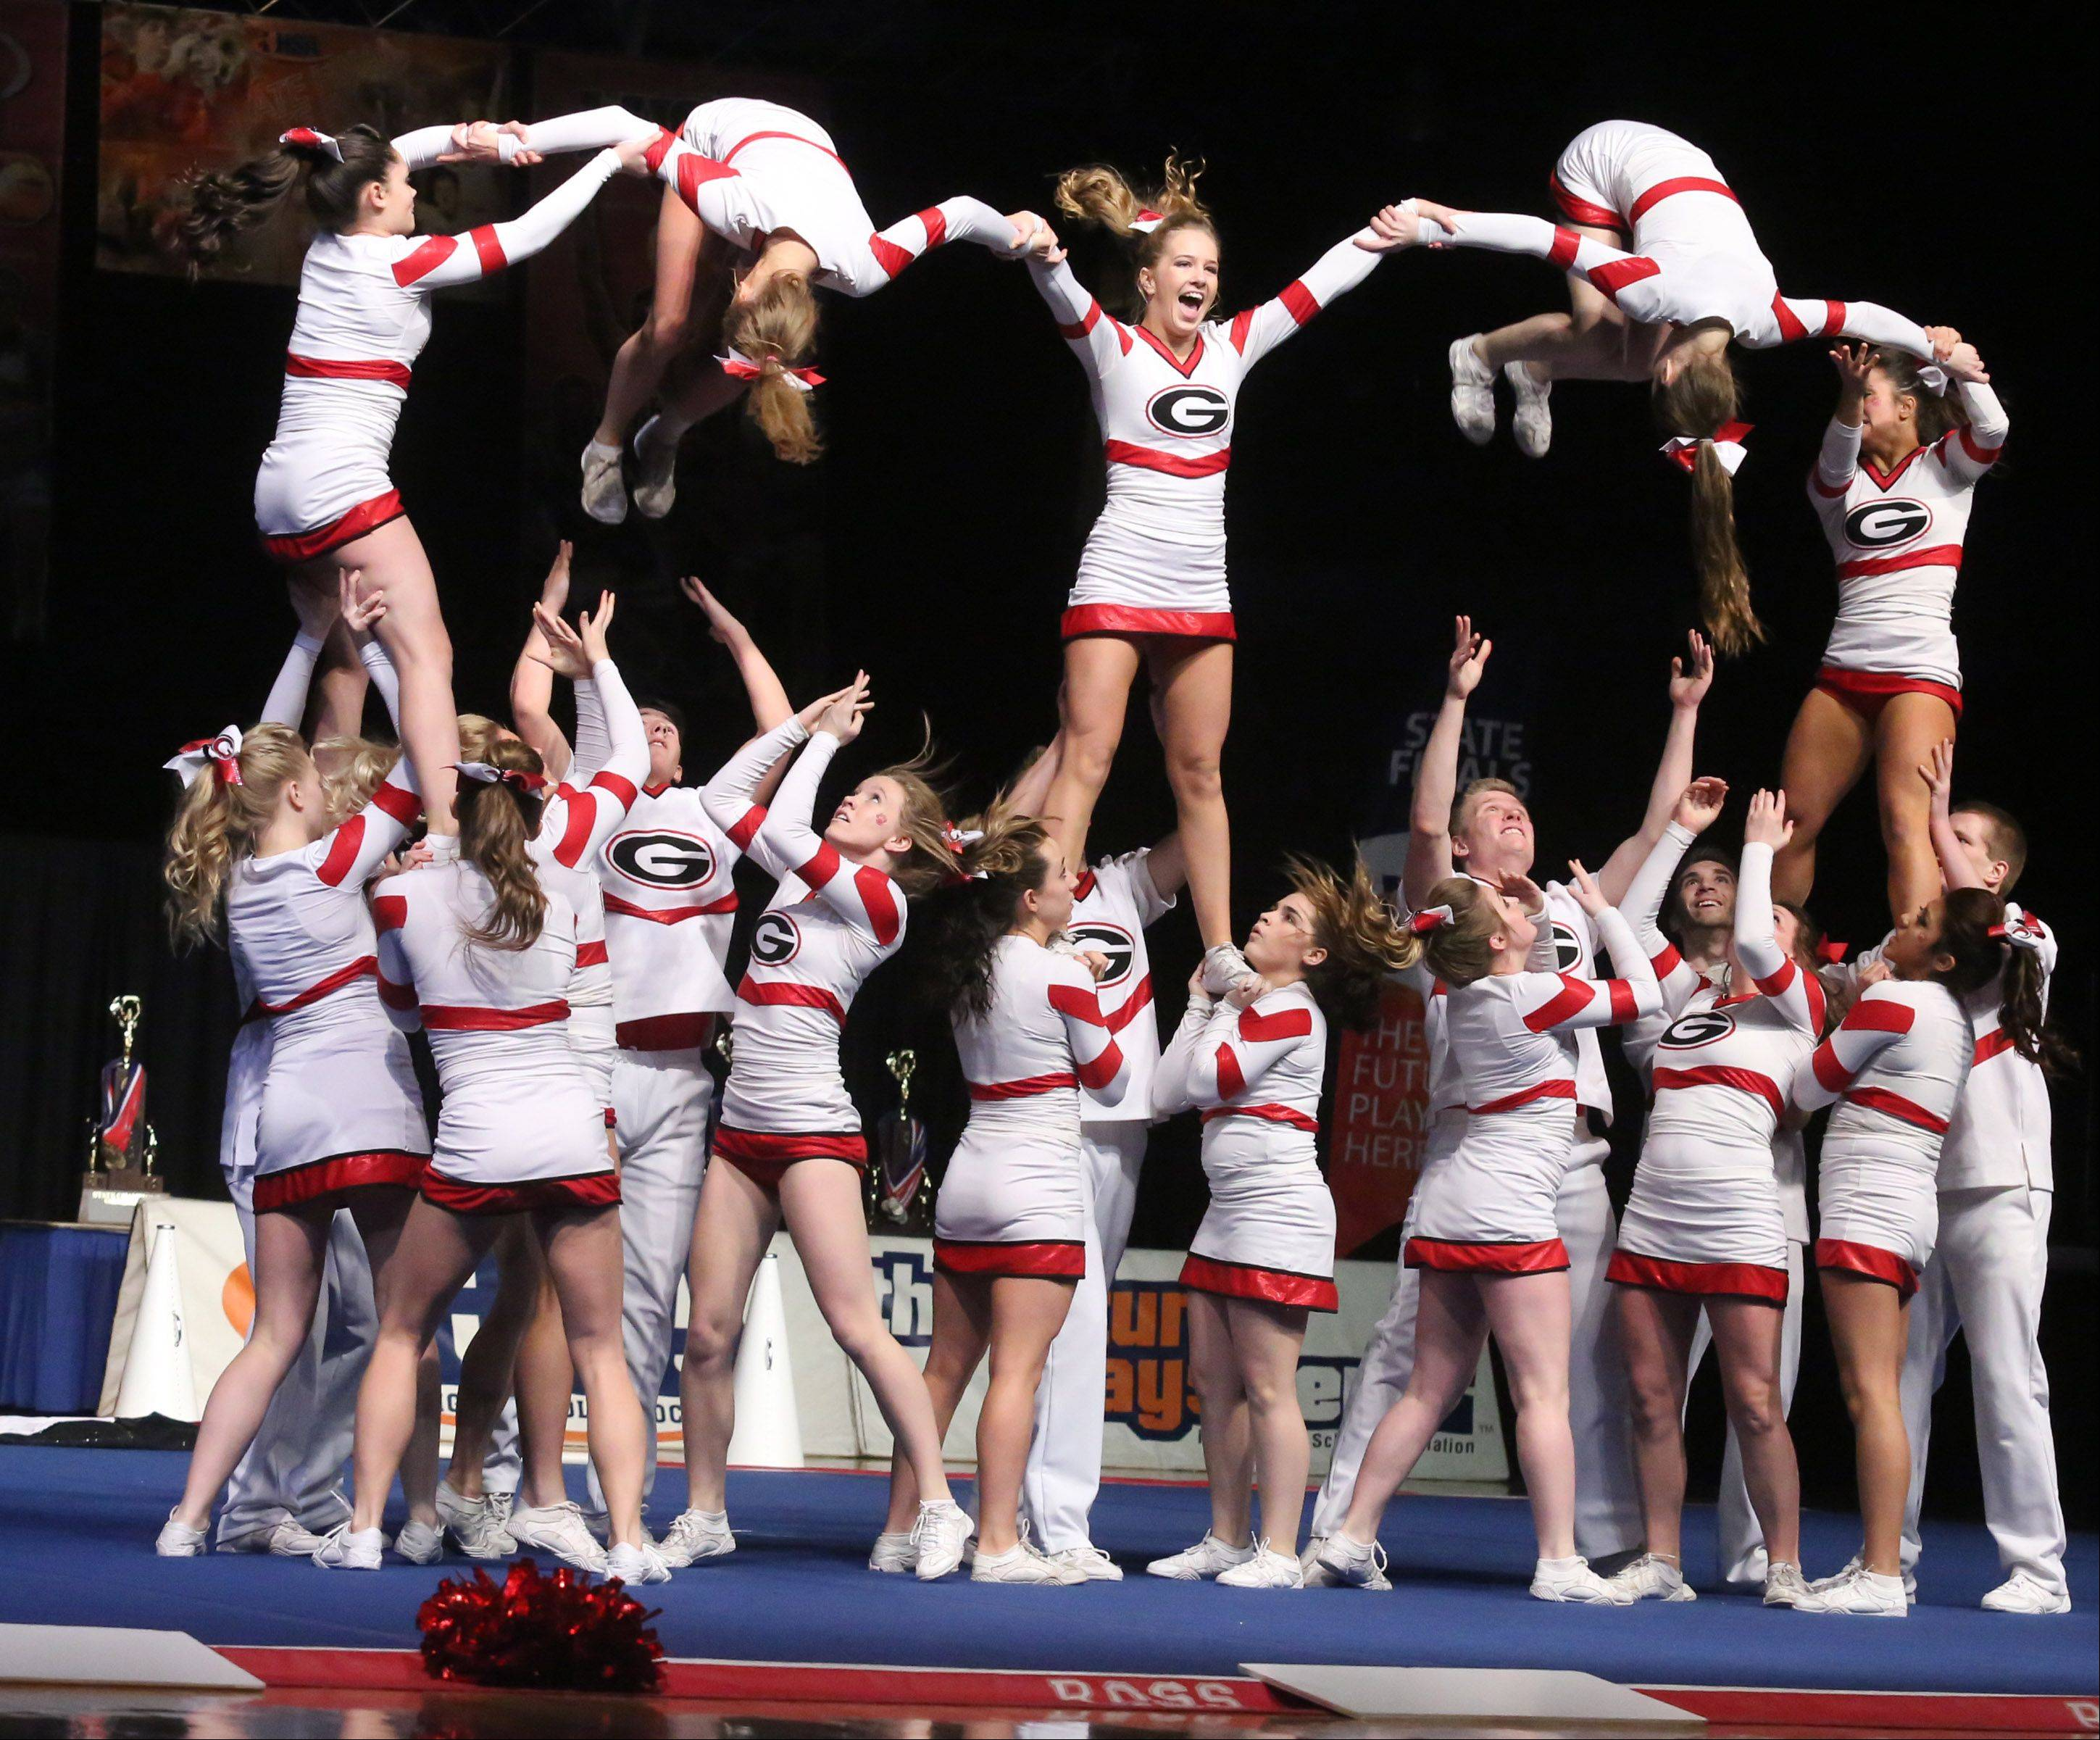 Grant High School's cheer team performs in the coed team category.